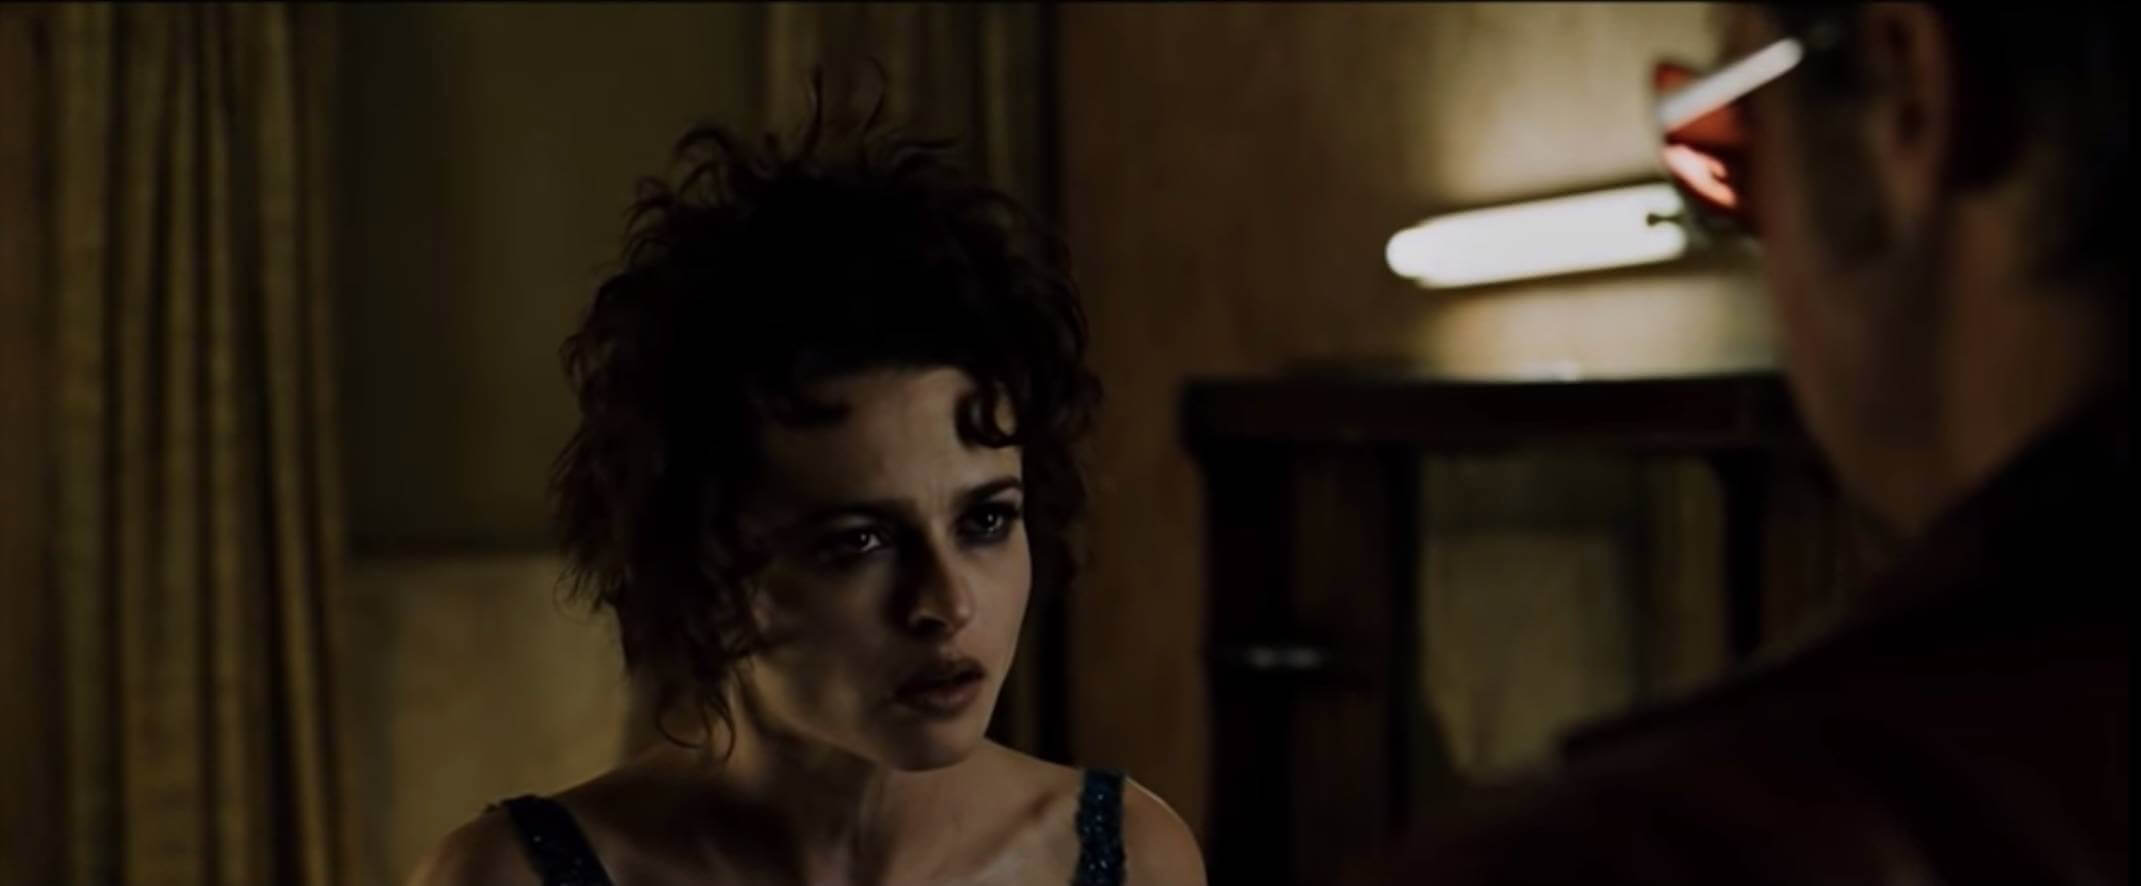 Rembrandt Lighting Setup and Examples for Photography and Film - Rembrandt Triangle - Fight Club